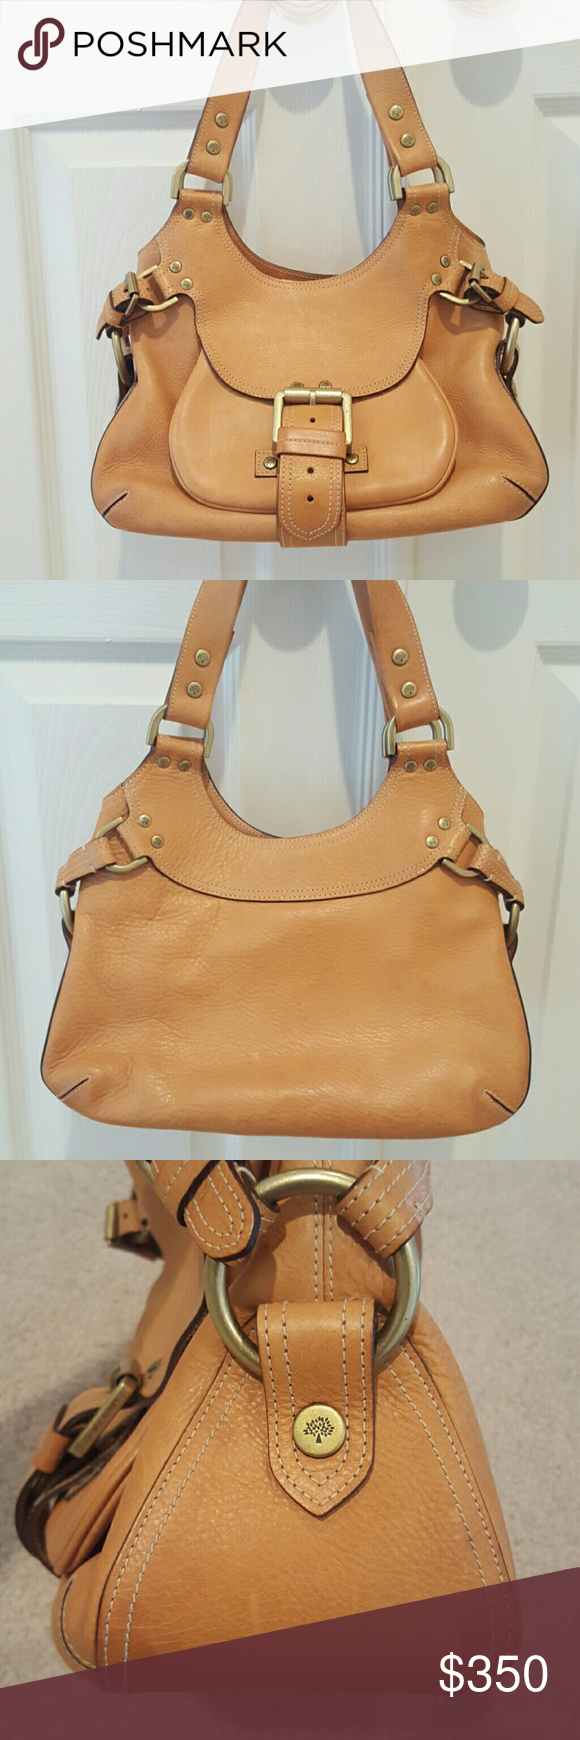 Mulberry Phoebe Leather Shoulder Bag This Beautiful And Durable Has Been Dicontinued For Quite A